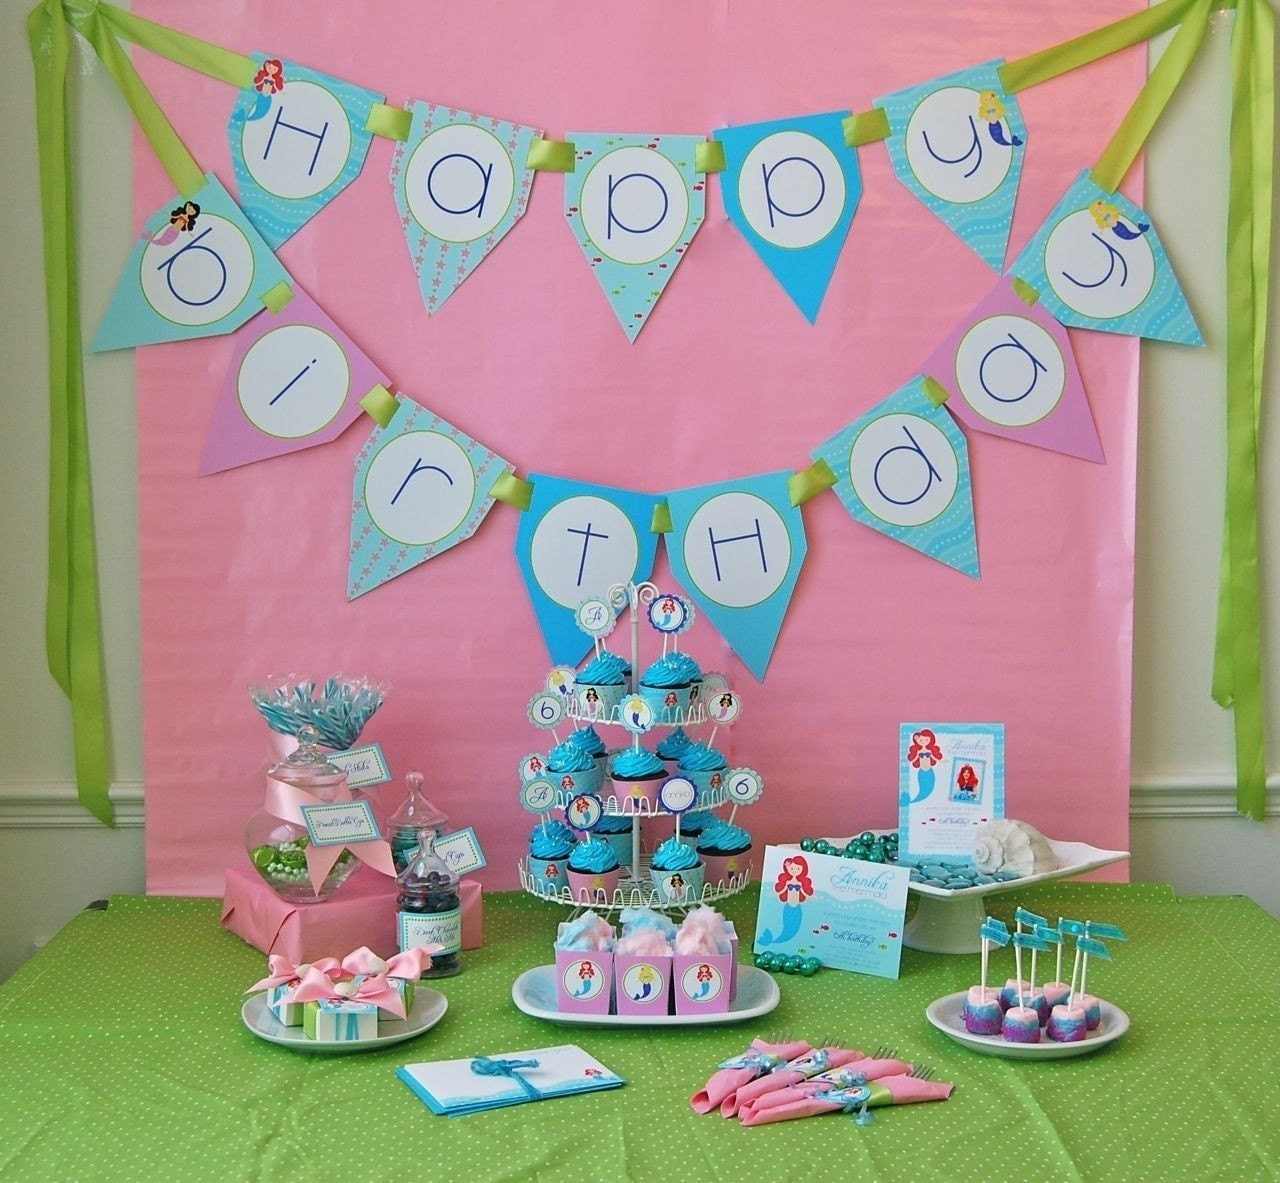 Little Mermaids Happy Birthday Banner DIY Printable